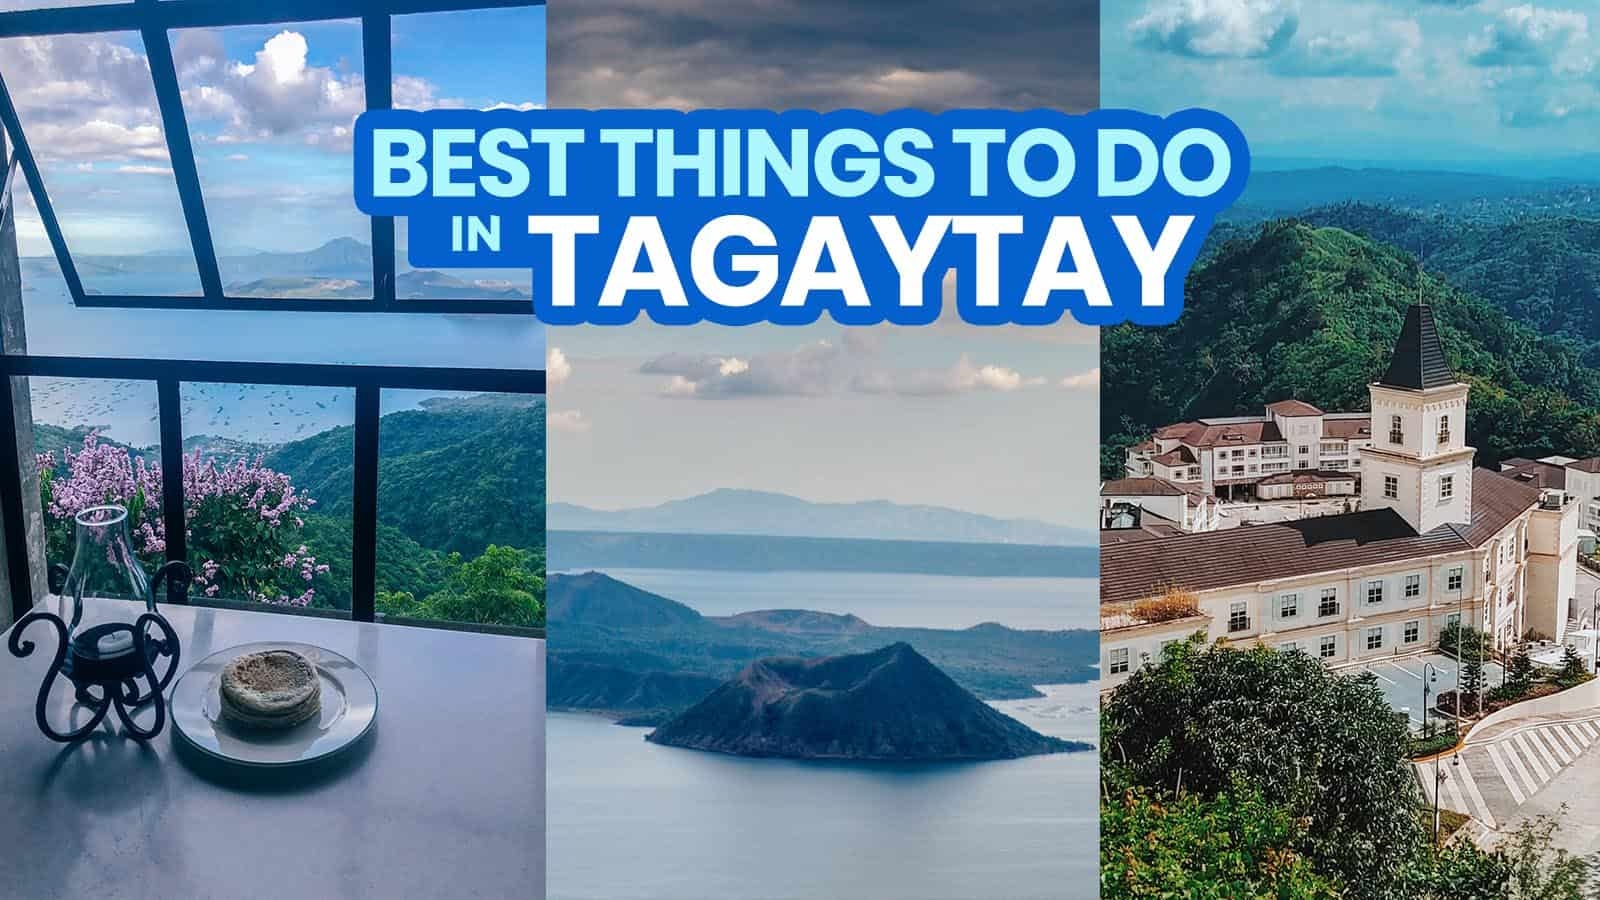 25 TAGAYTAY TOURIST SPOTS & THINGS TO DO 2021